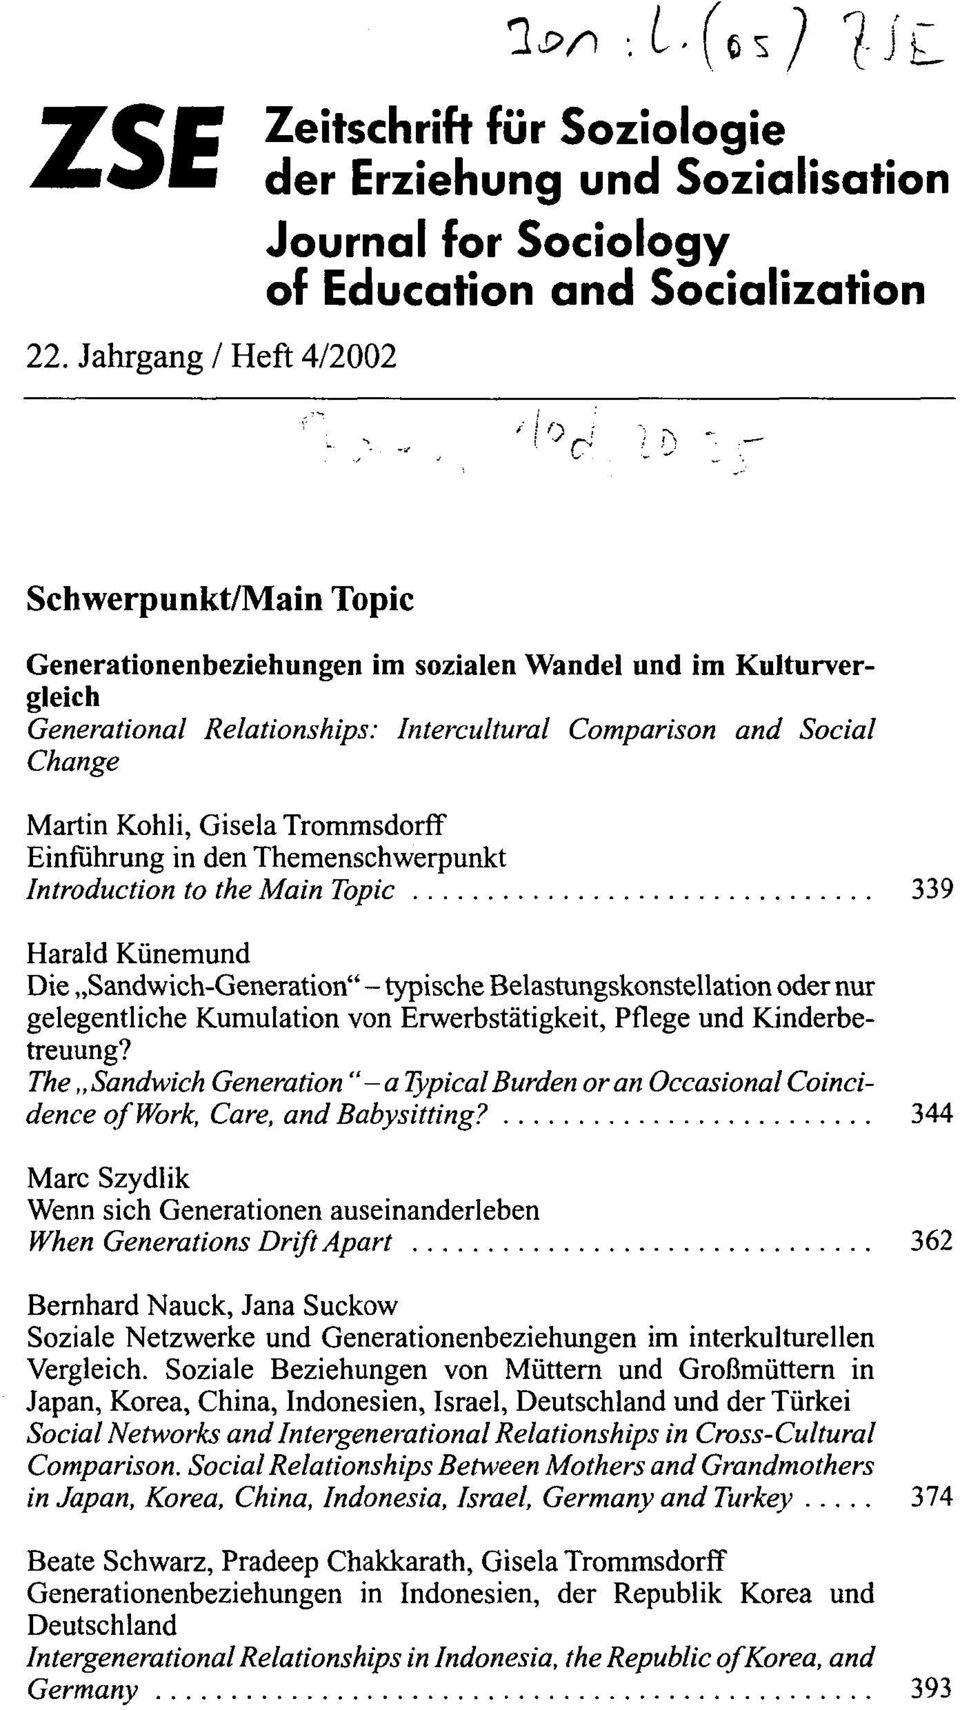 Wandel und im Kulturver gleich Generational Relationships: Intercultural Comparison and Social Change Martin Kohli, Gisela Trommsdorff Einfuhrung in den Themenschwerpunkt Introduction to the Main